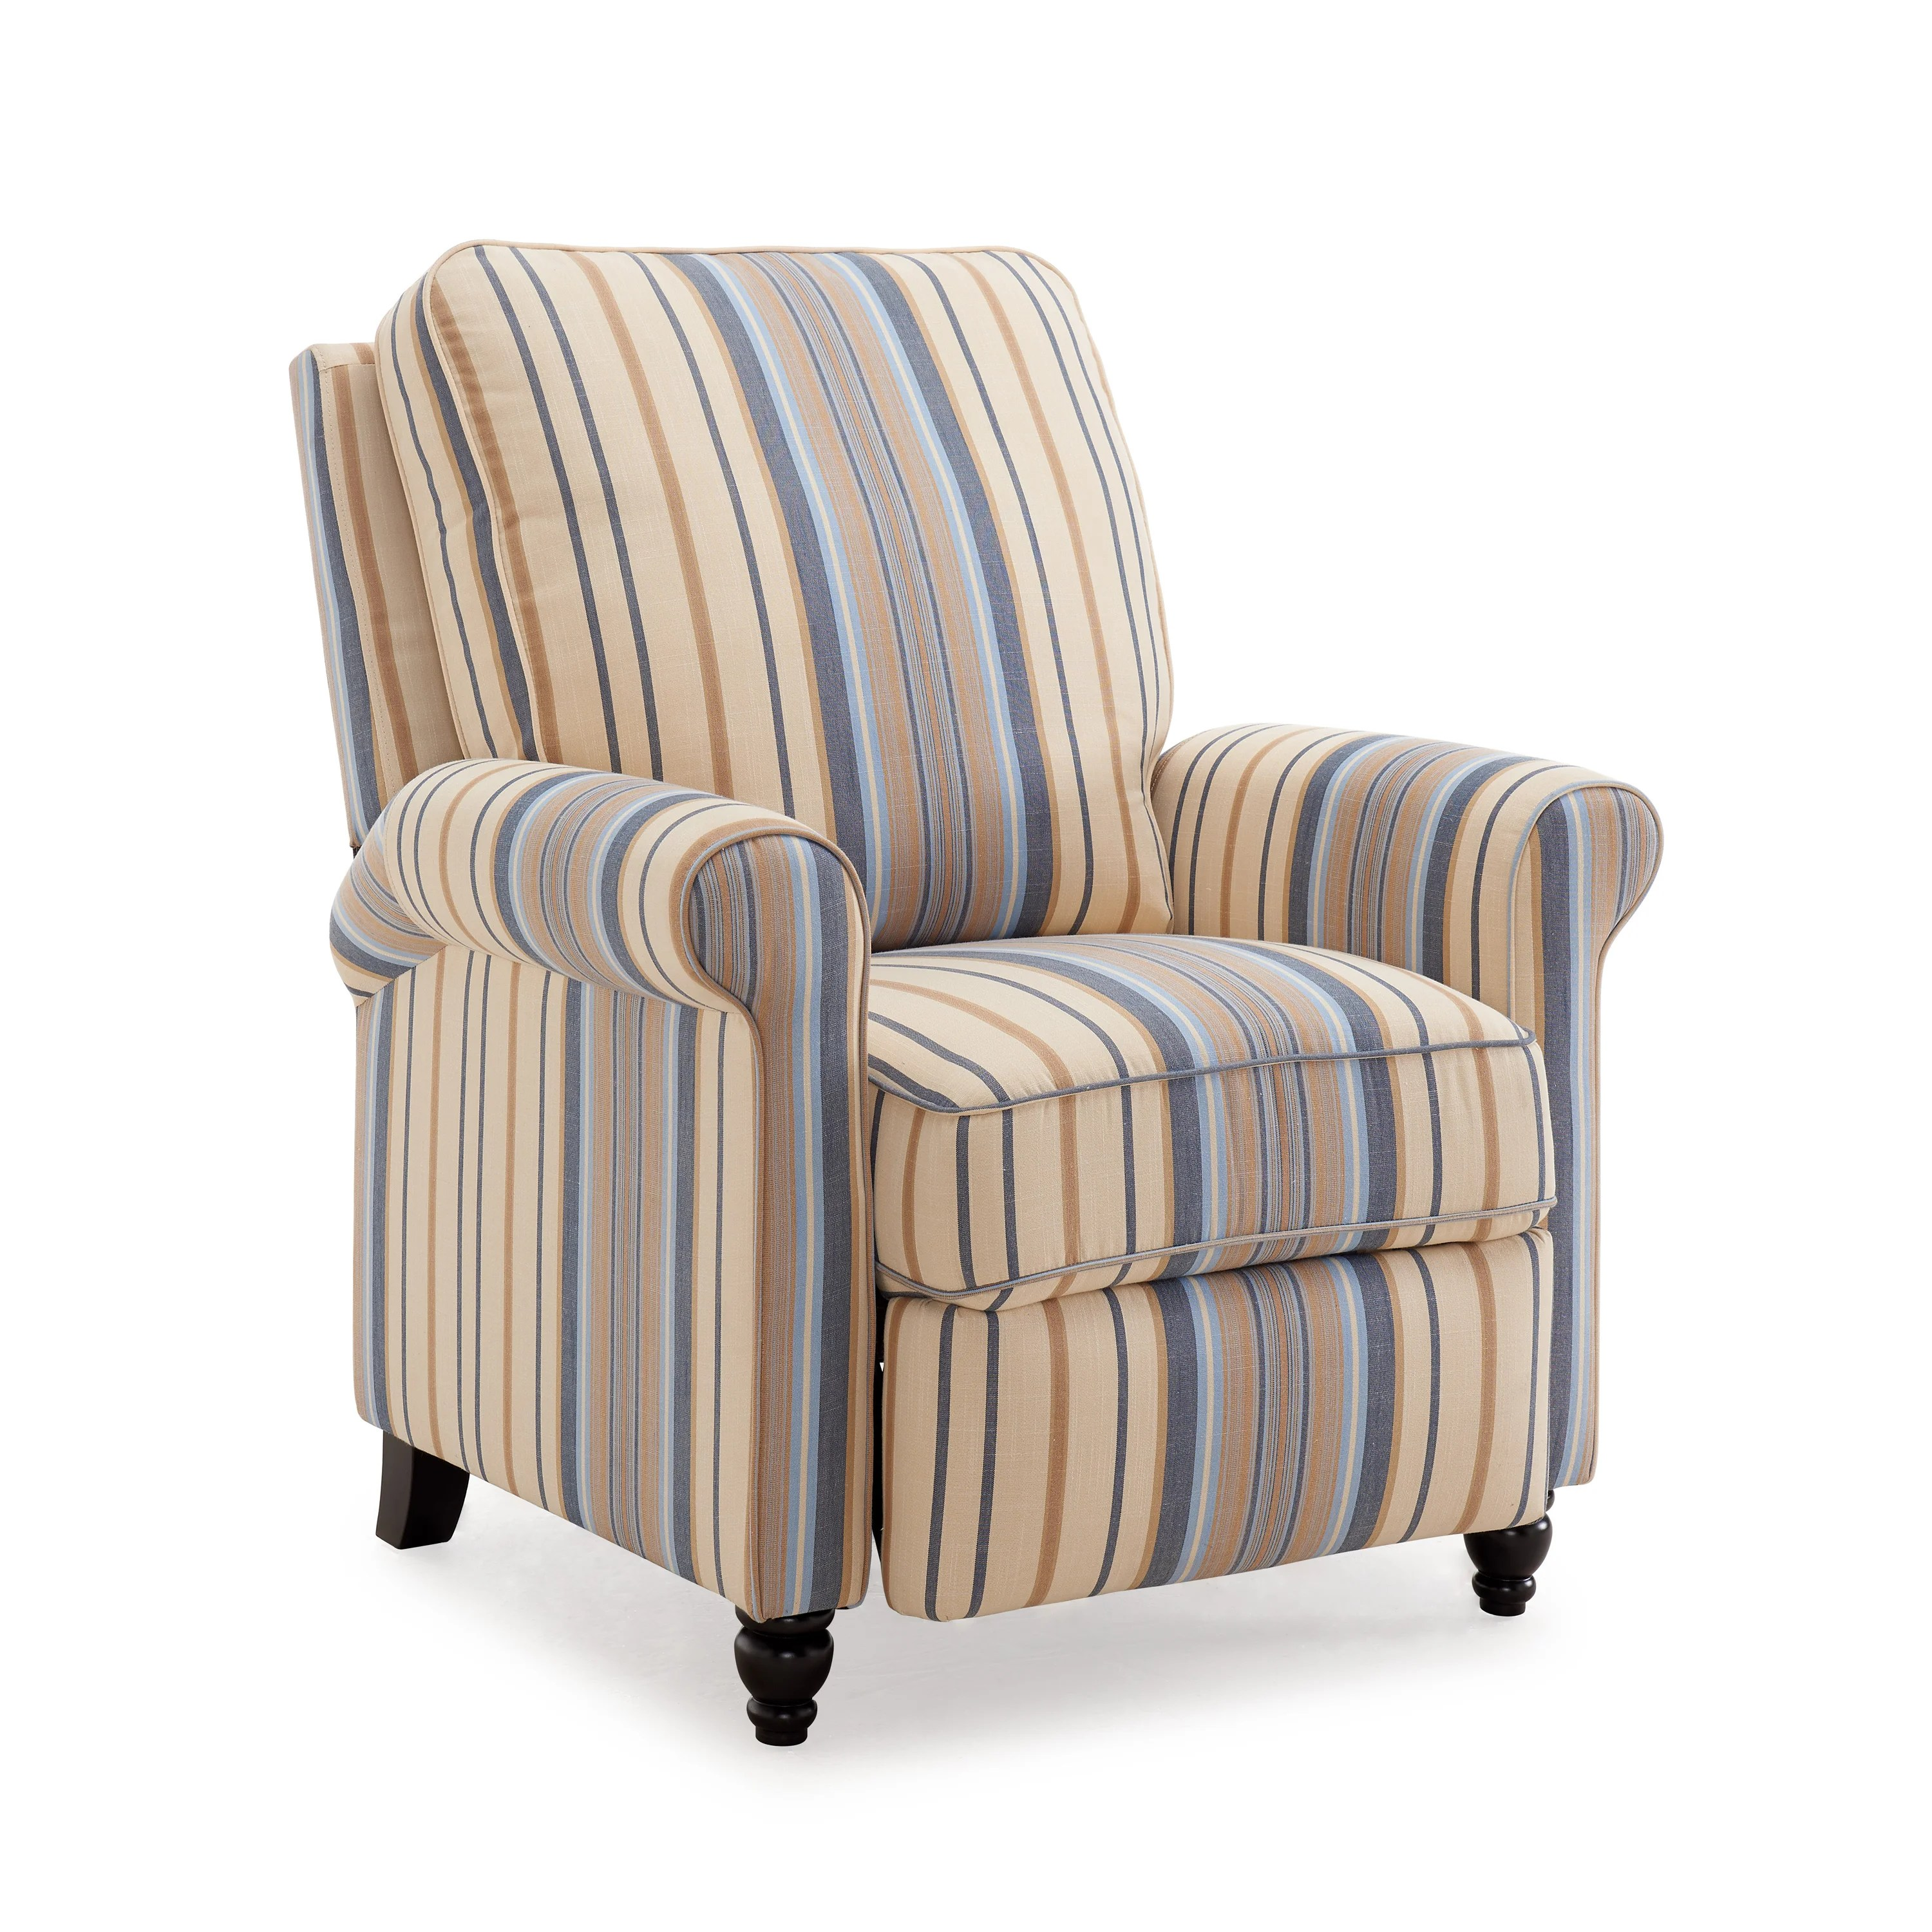 blue recliner chair deck covers buy online australia chairs and rocking recliners for less overstock